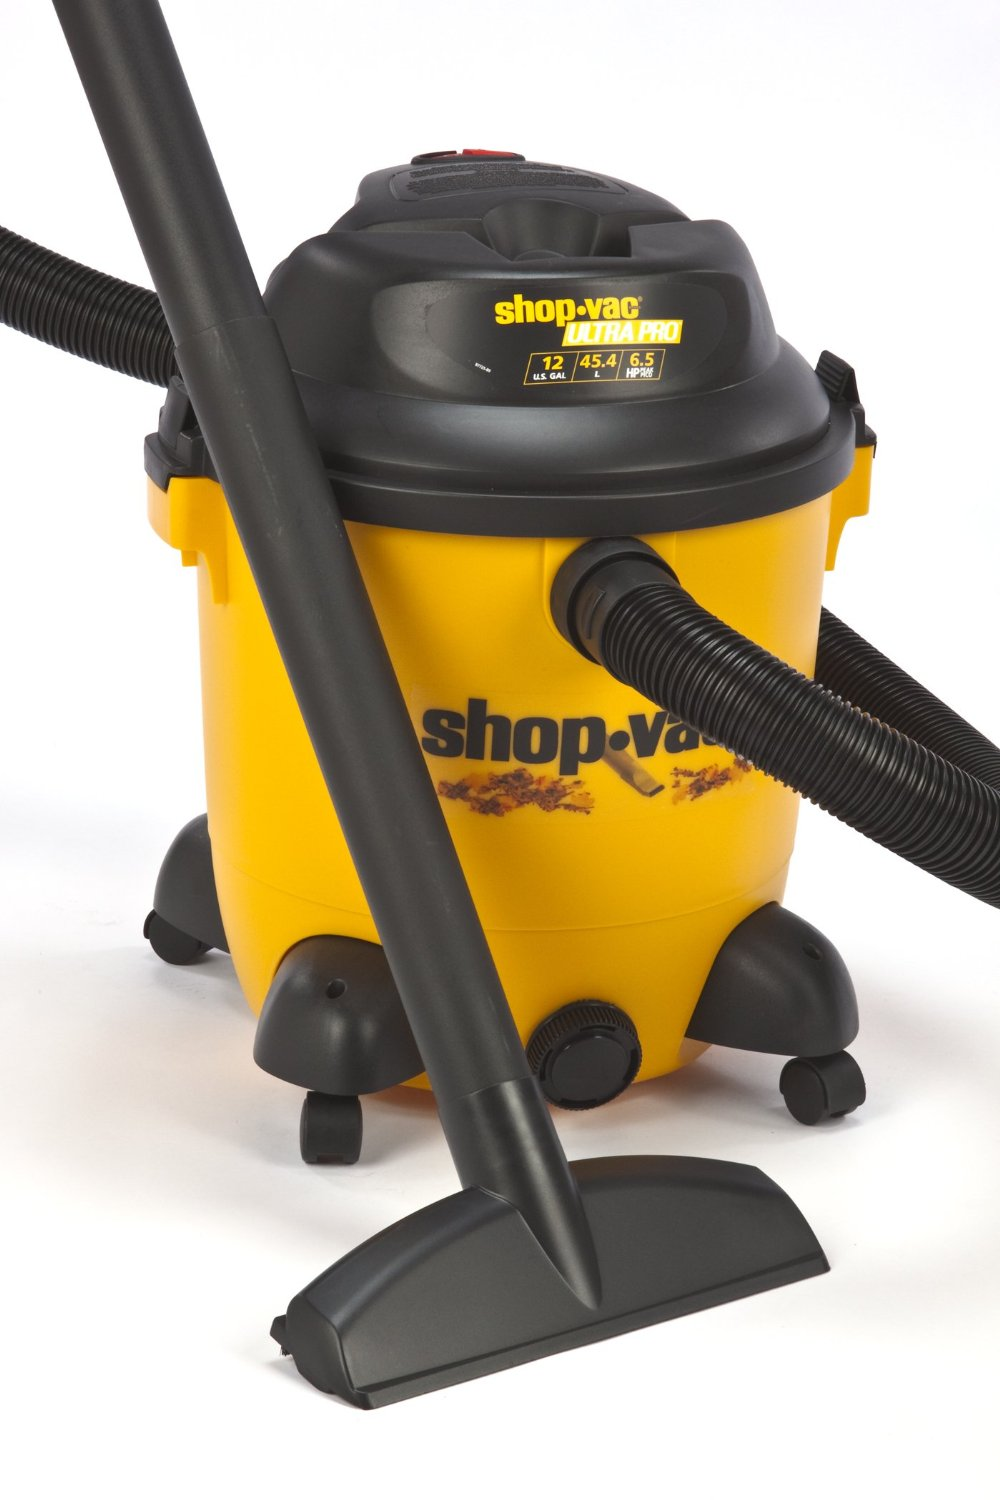 shop vac for leaves shop vac 9633400 6 5 peak hp ultra pro series 12 5196